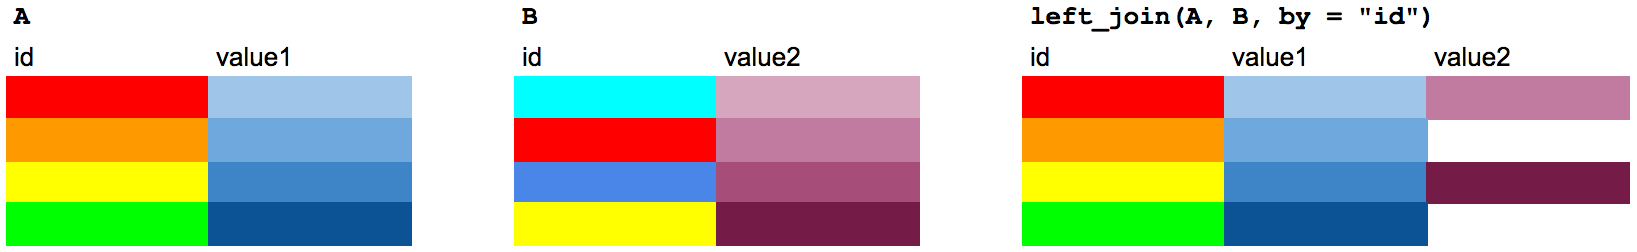 A left join, explained using table of colors.